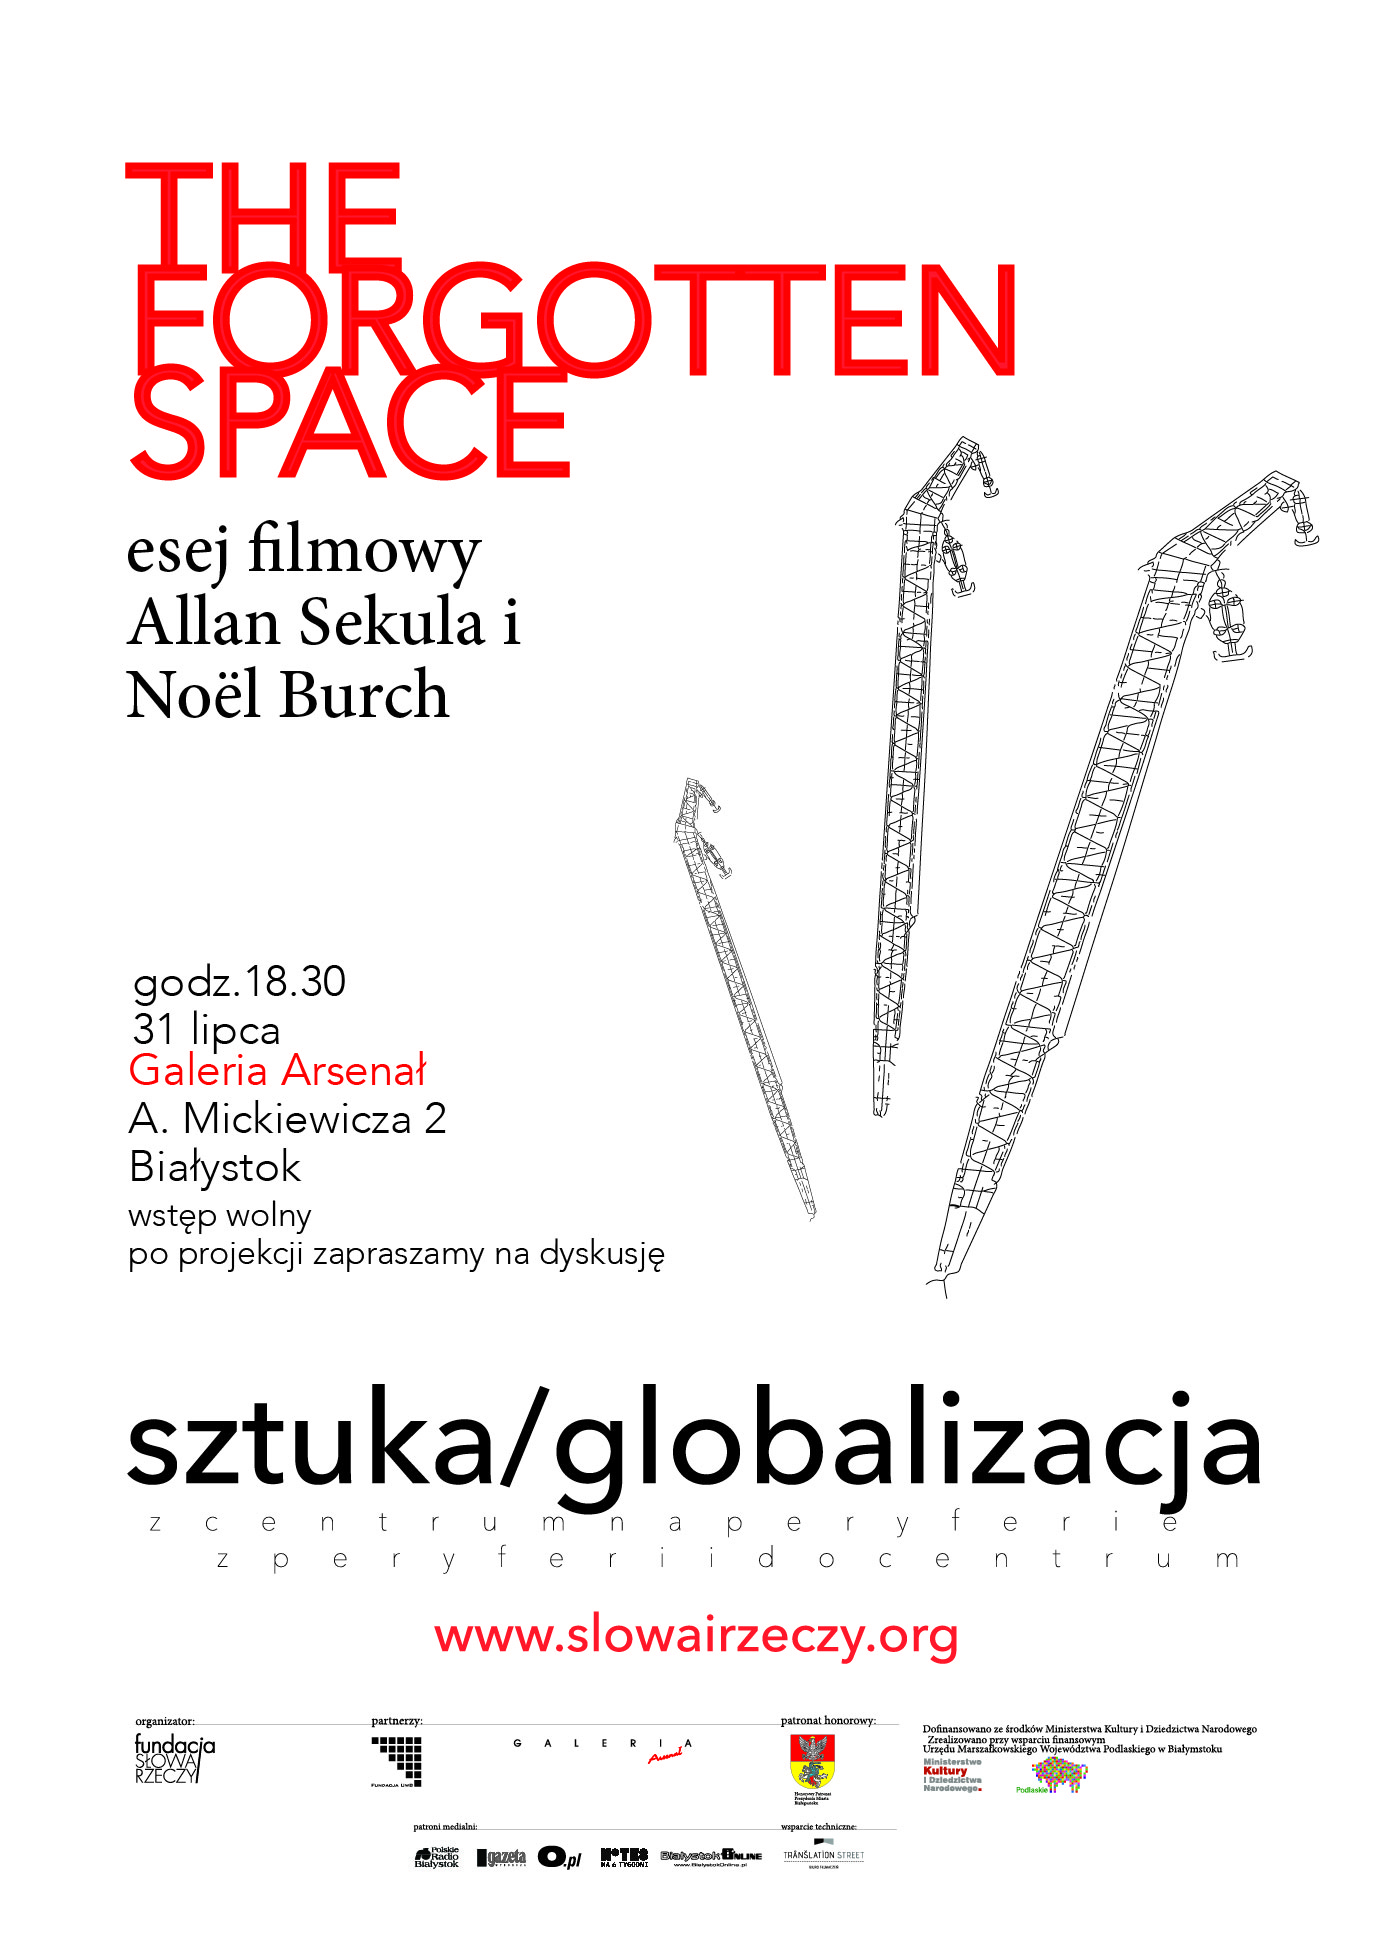 plakat forgottenspace final 72 2